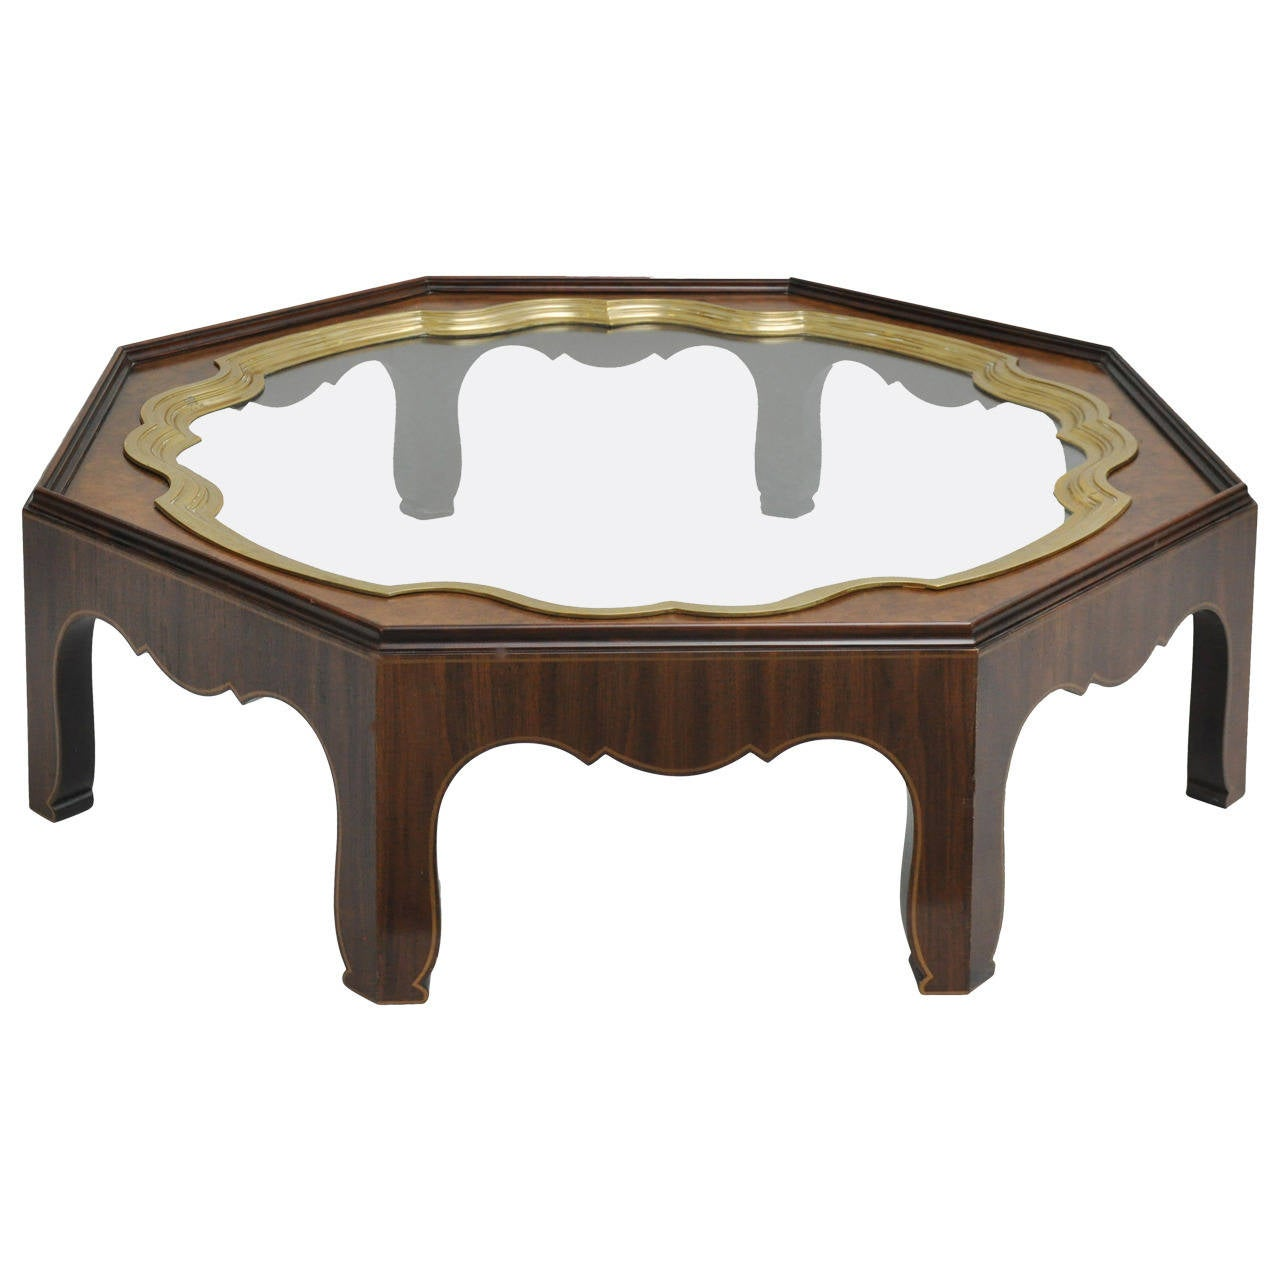 baker furniture burled wood cocktail table brass and glass tray at 1stdibs. Black Bedroom Furniture Sets. Home Design Ideas